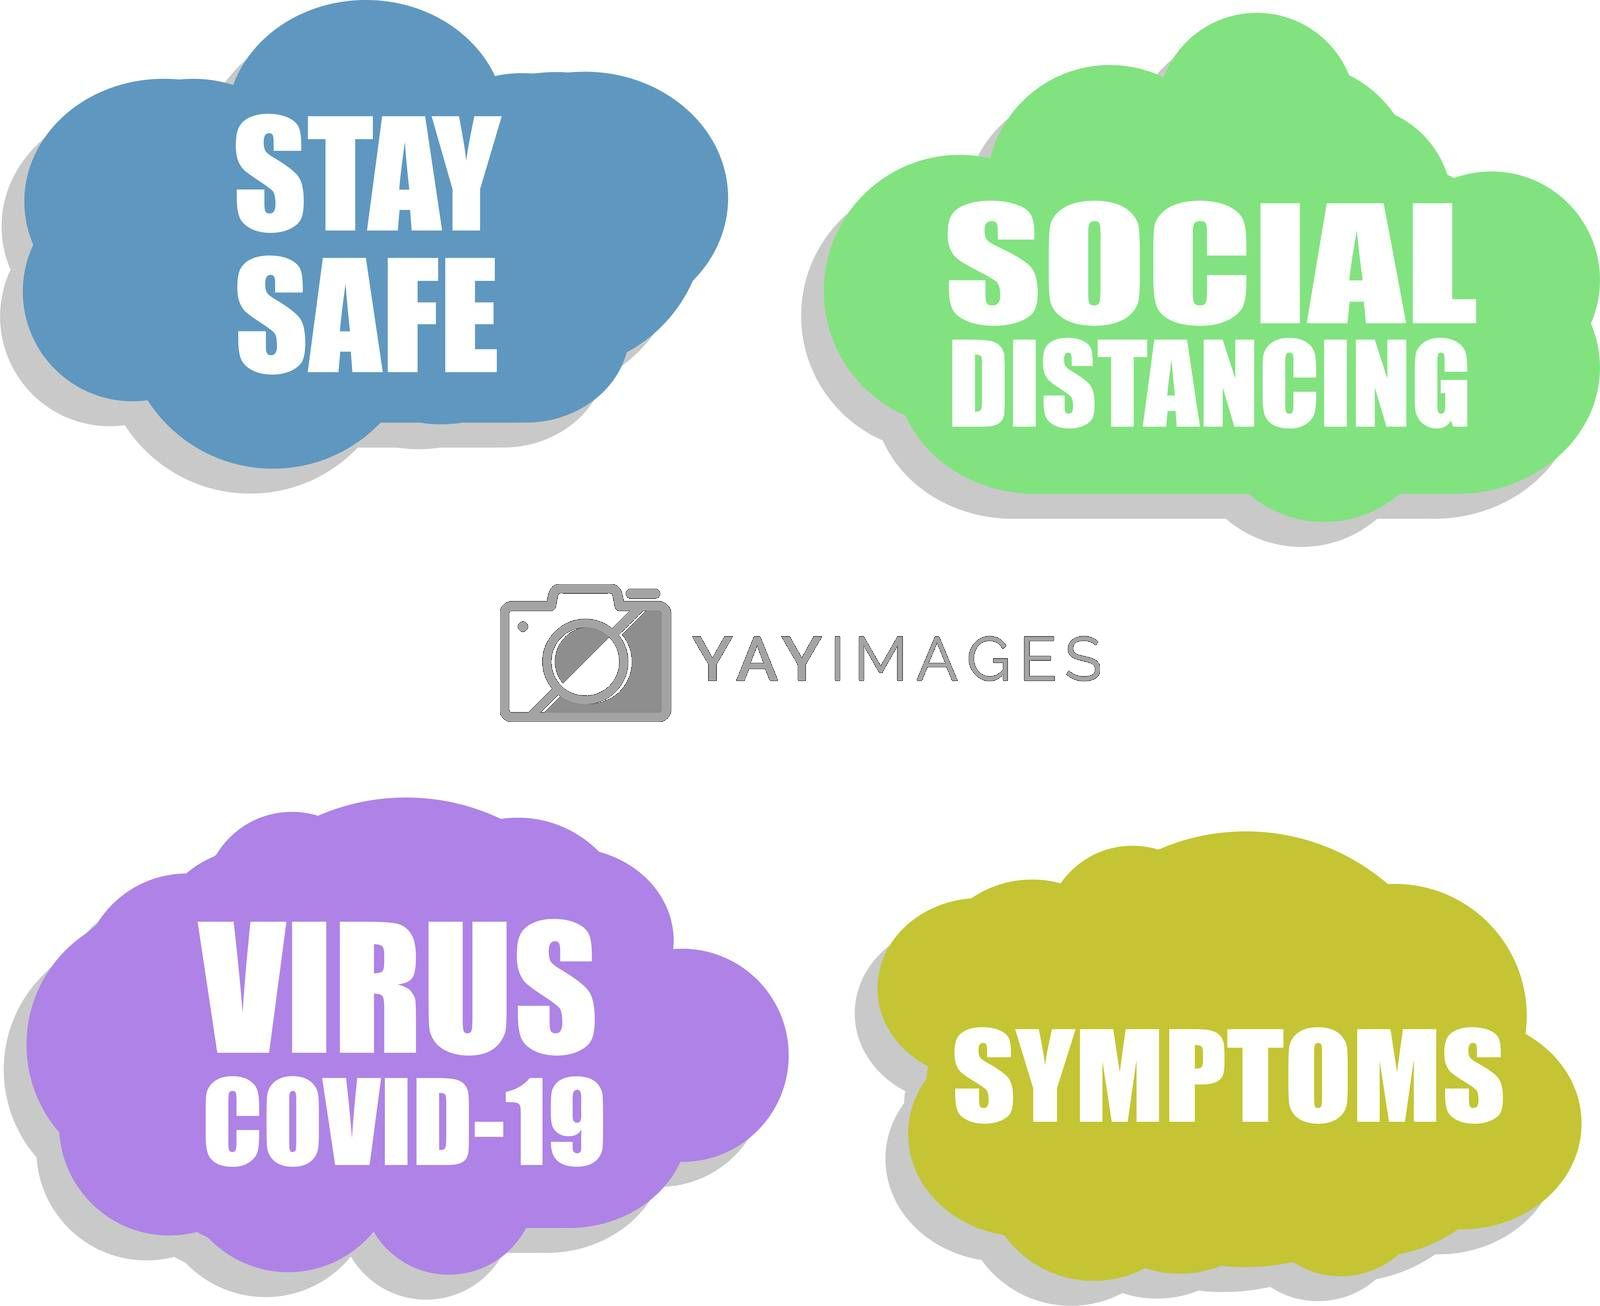 Social Distancing. Against Coronavirus icon. COVID-19 icon. Pandemic. Virus COVID 19. Stay Safe. Sign isolated on white background